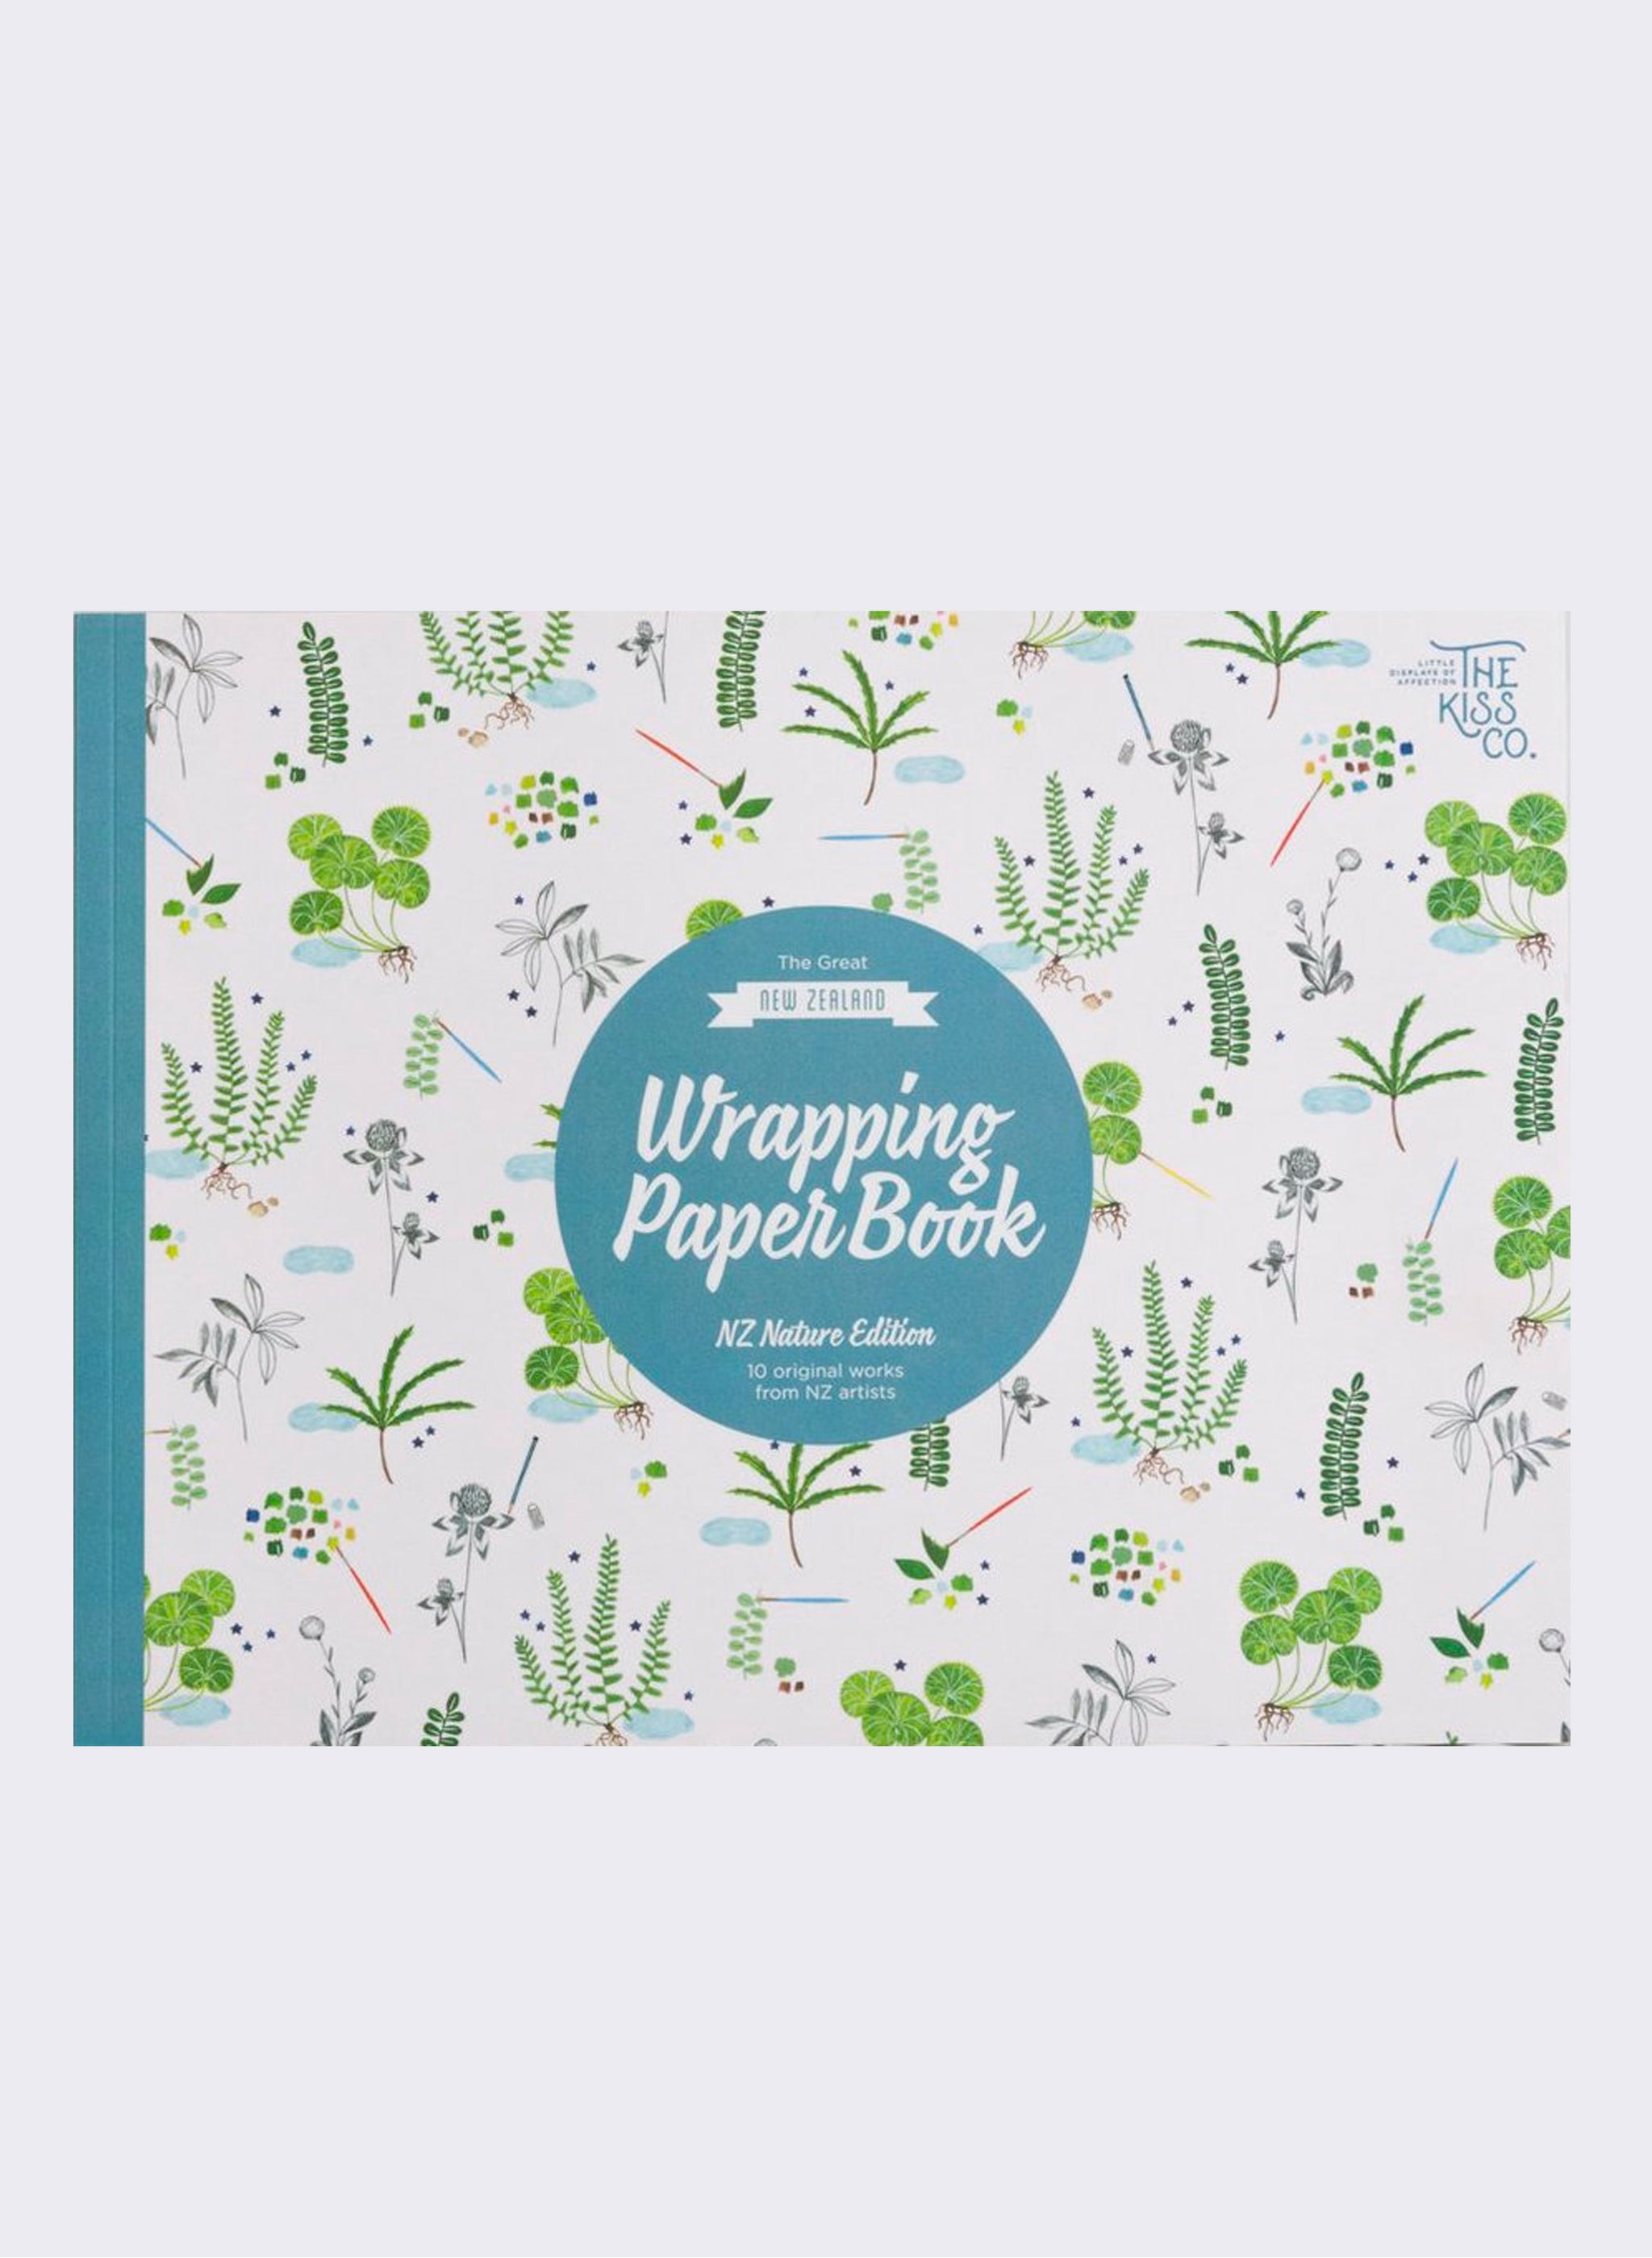 The Great NZ Wrapping Paper Book - Nature Edition